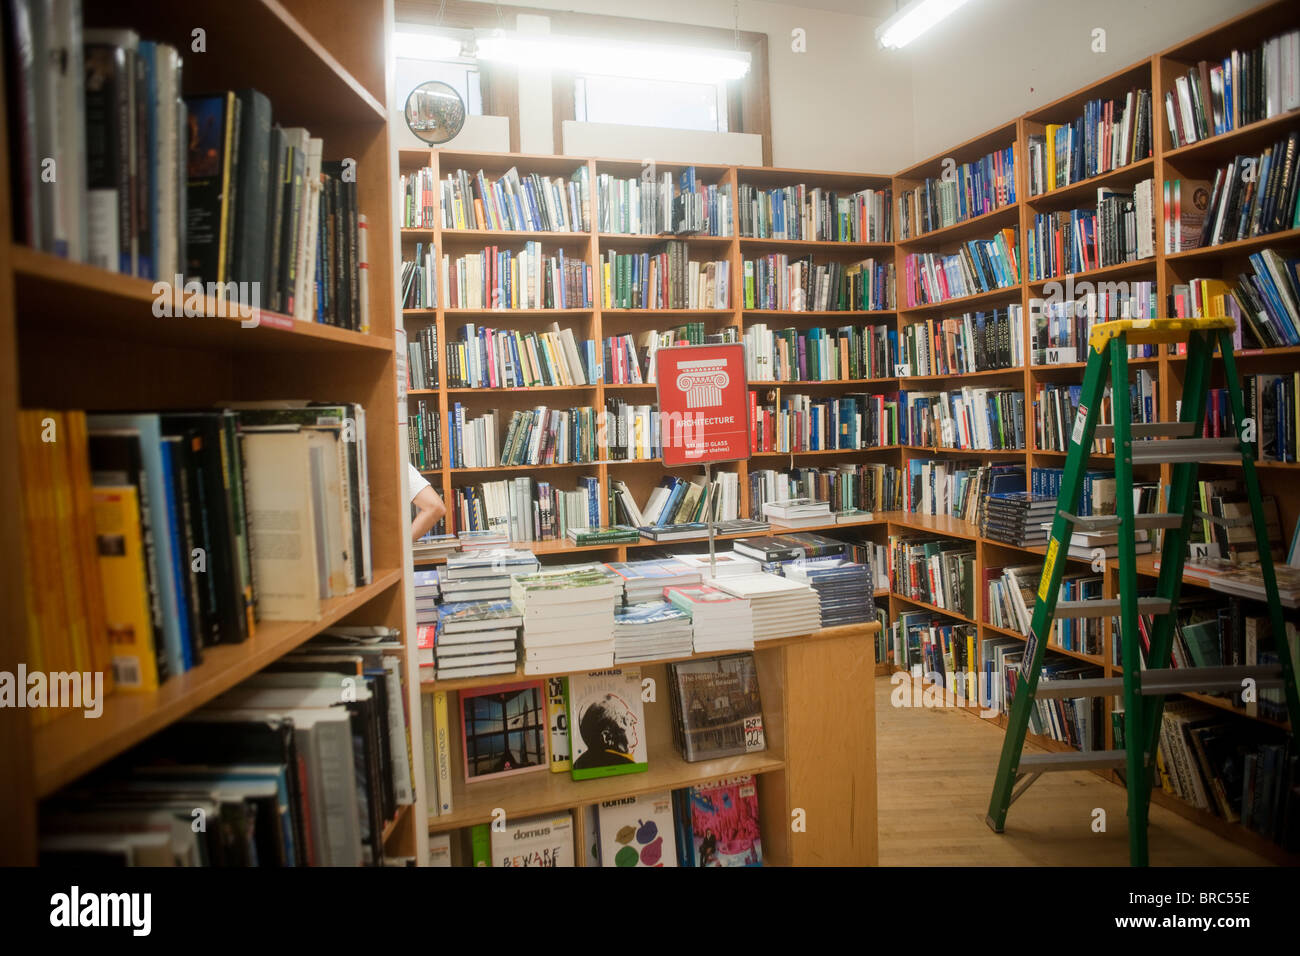 Over 18 miles of books at the Strand Bookstore in the New York neighborhood of Greenwich Village - Stock Image